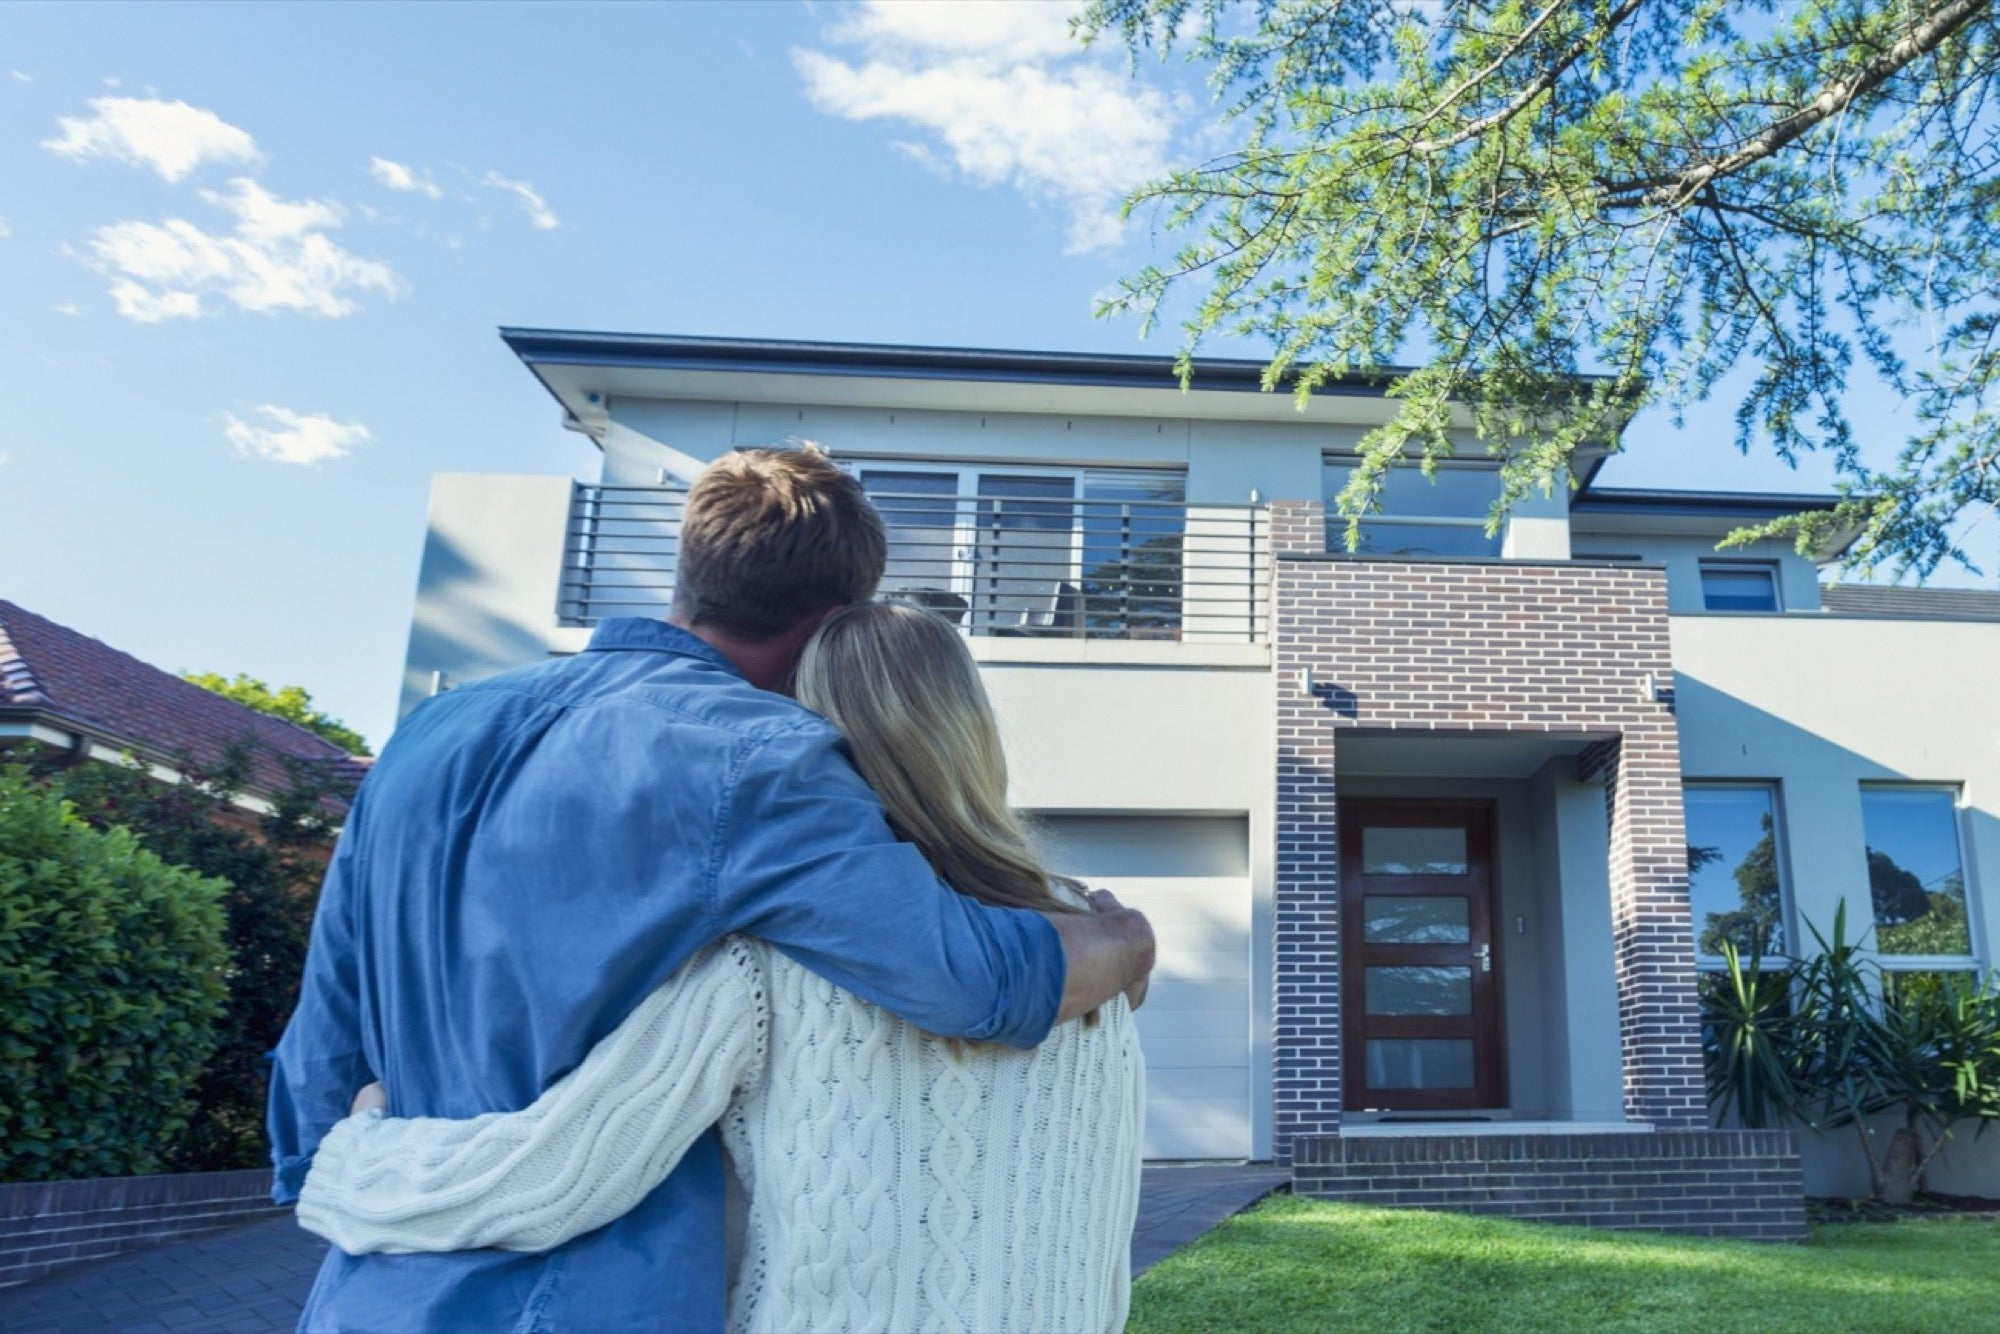 6 Ways to Protect Your Home in a Lawsuit